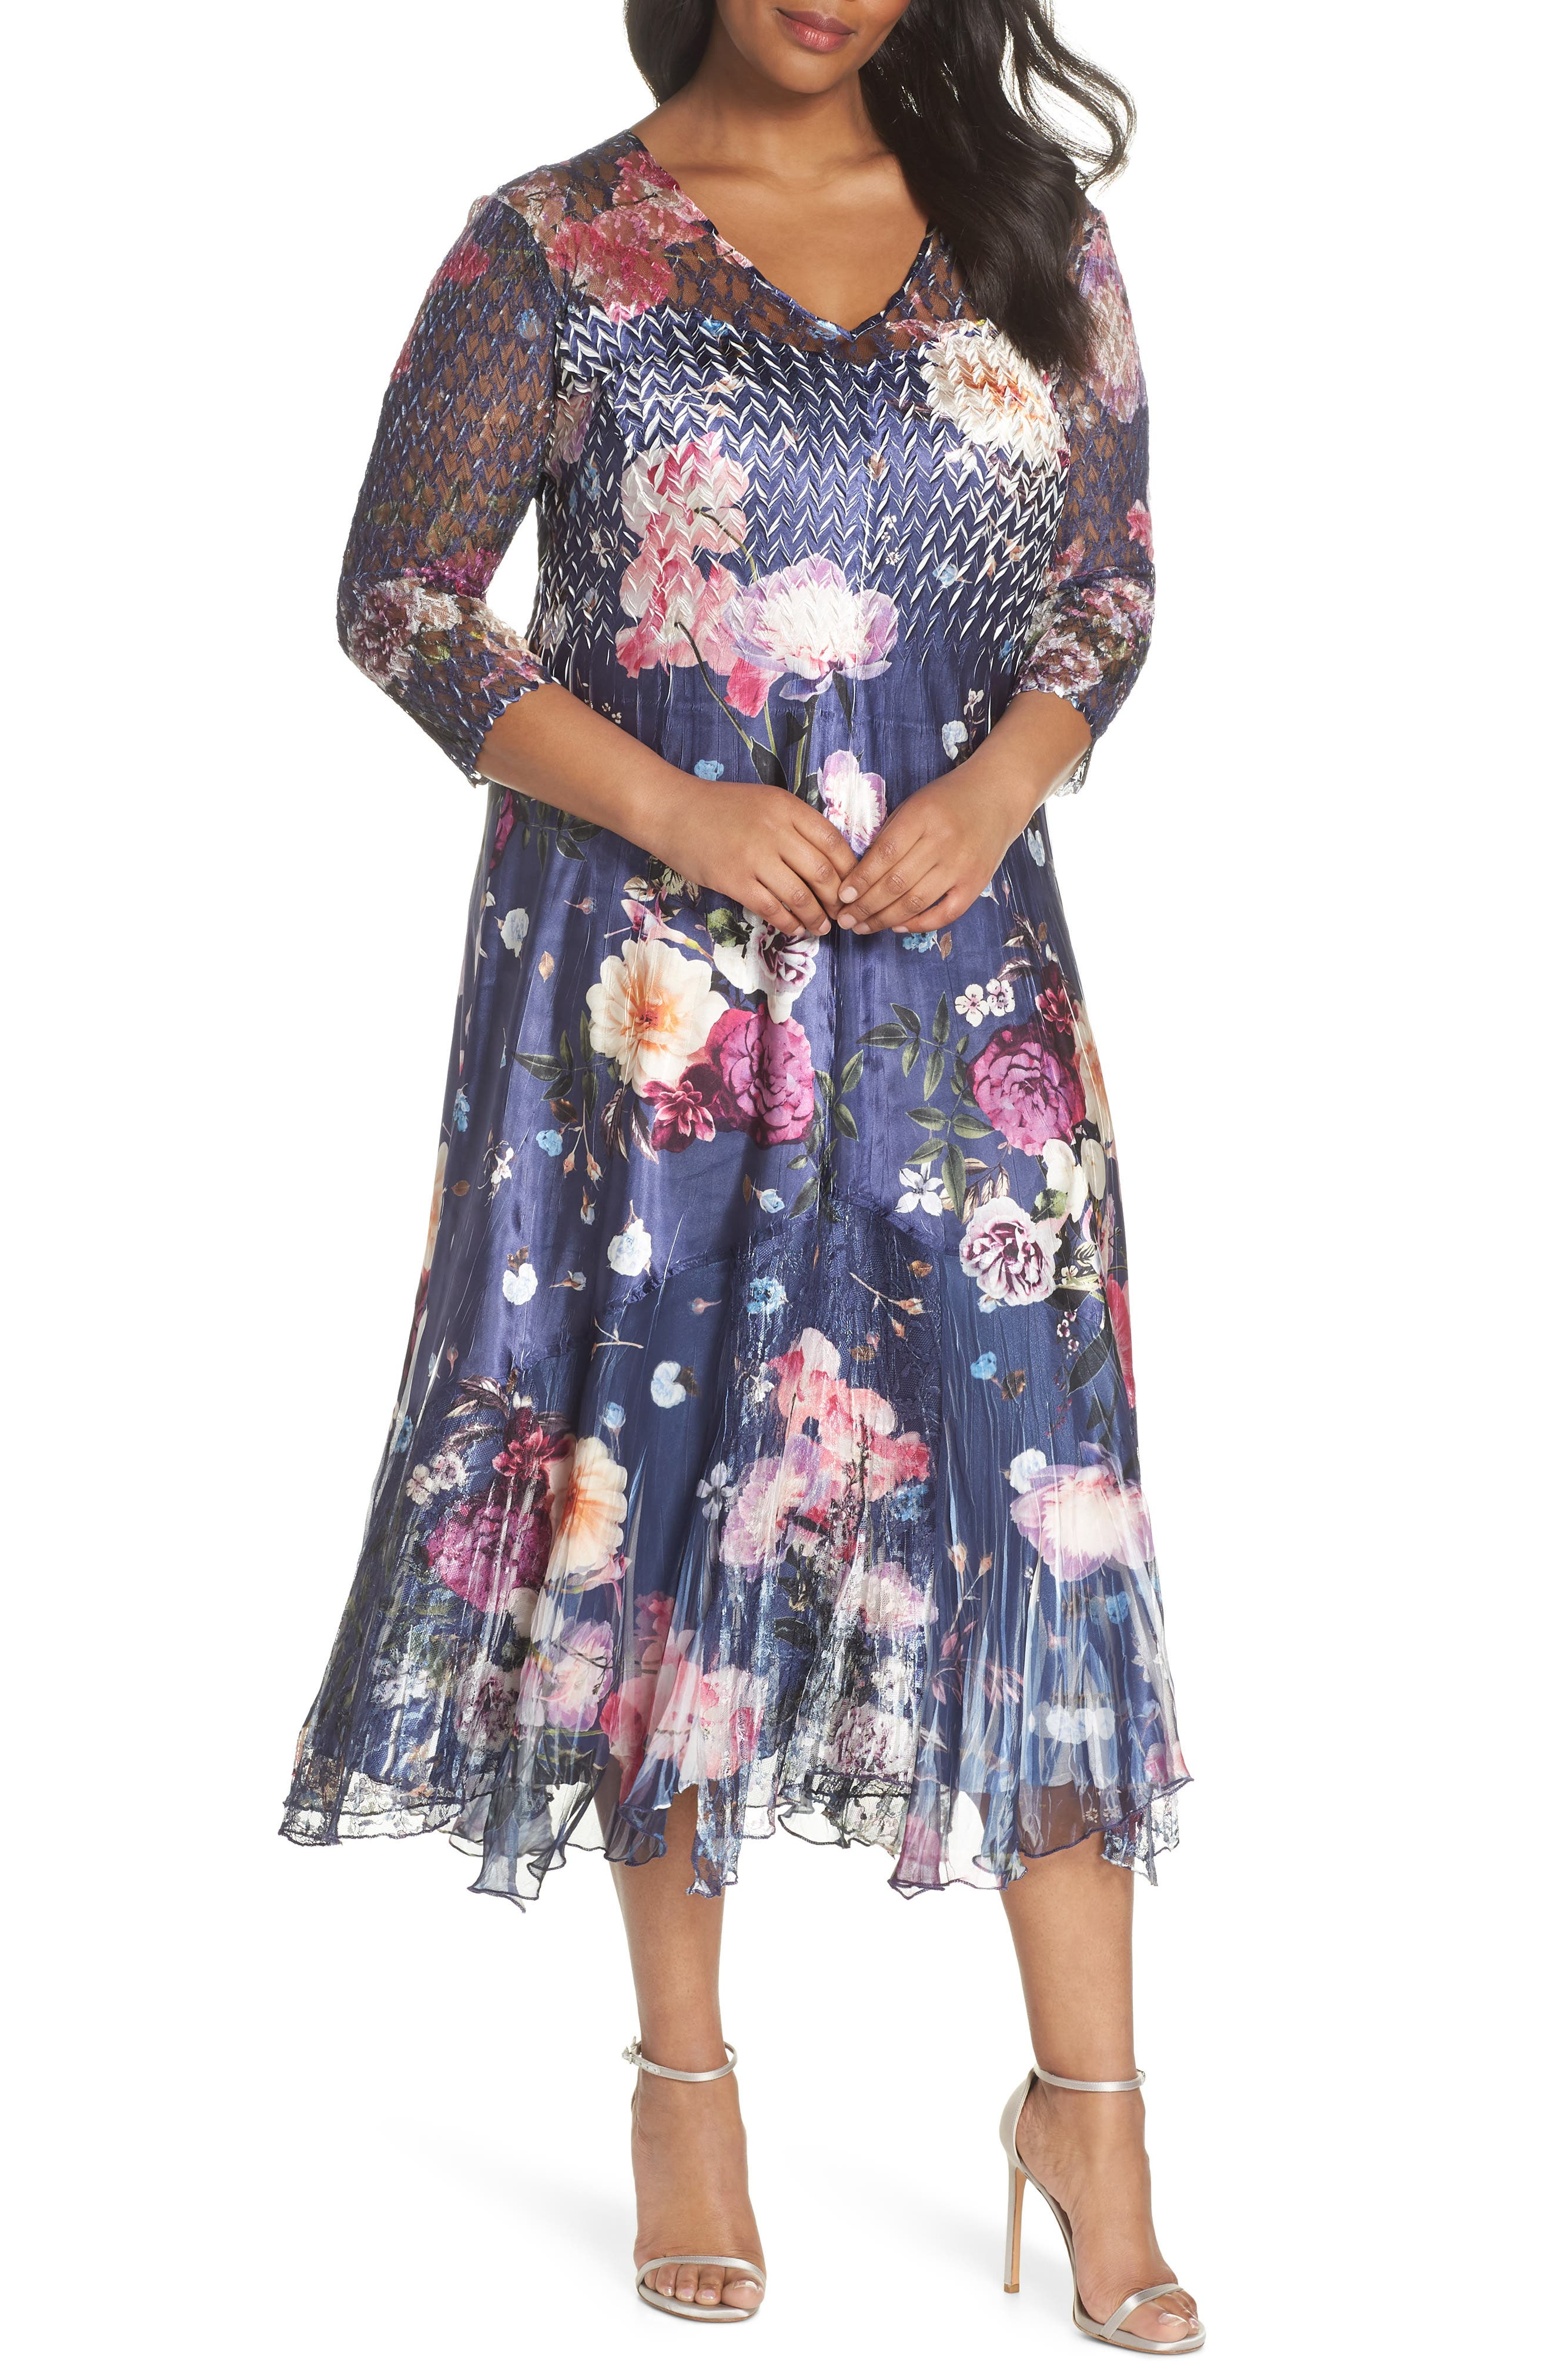 Koramov Floral Print Lace Inset Dress,                             Main thumbnail 1, color,                             Velvet Bouquet